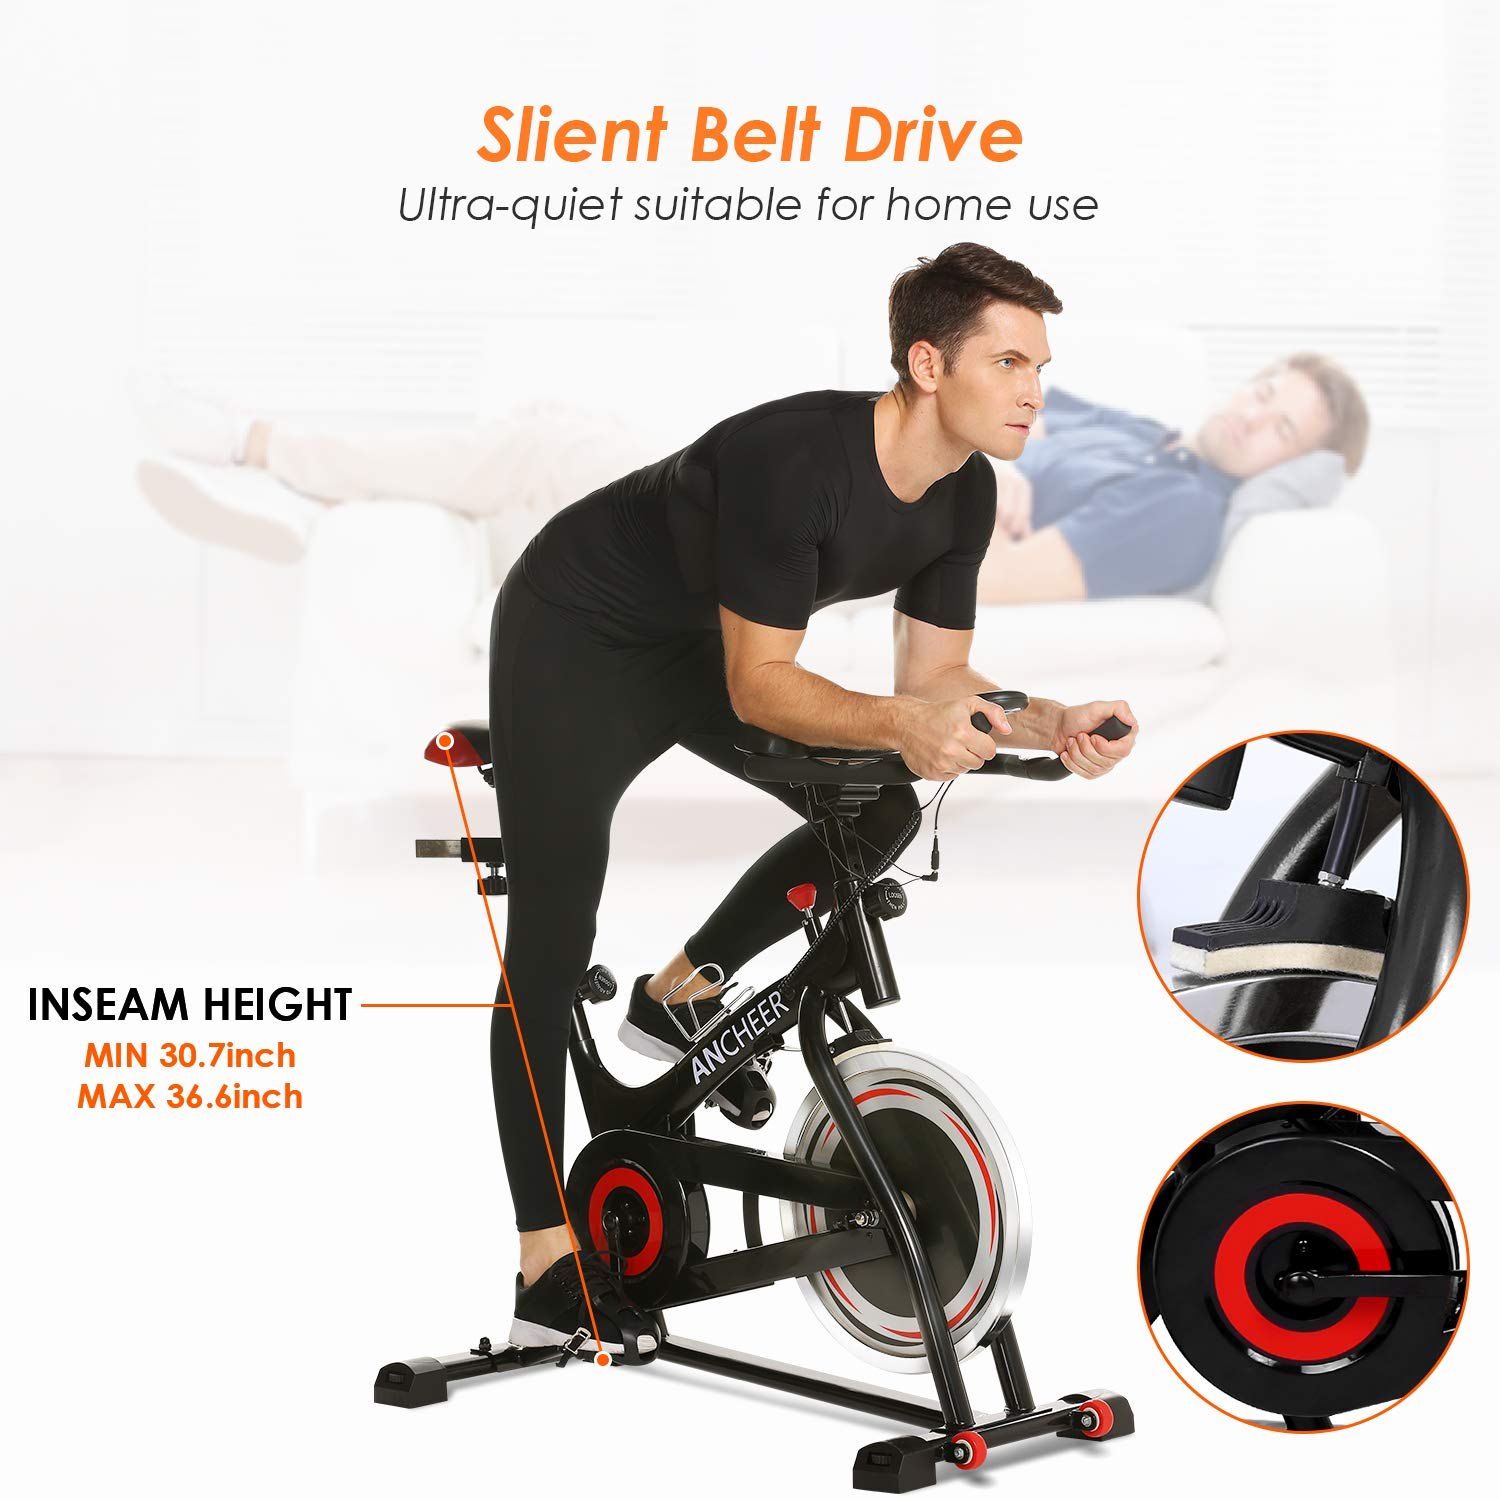 ANCHEER Stationary Bike, 40 LBS Flywheel Belt Drive Indoor Cycling Exercise Bike with Pulse, Elbow Tray (Model: ANCHEER-A5001) (Black) by ANCHEER (Image #4)